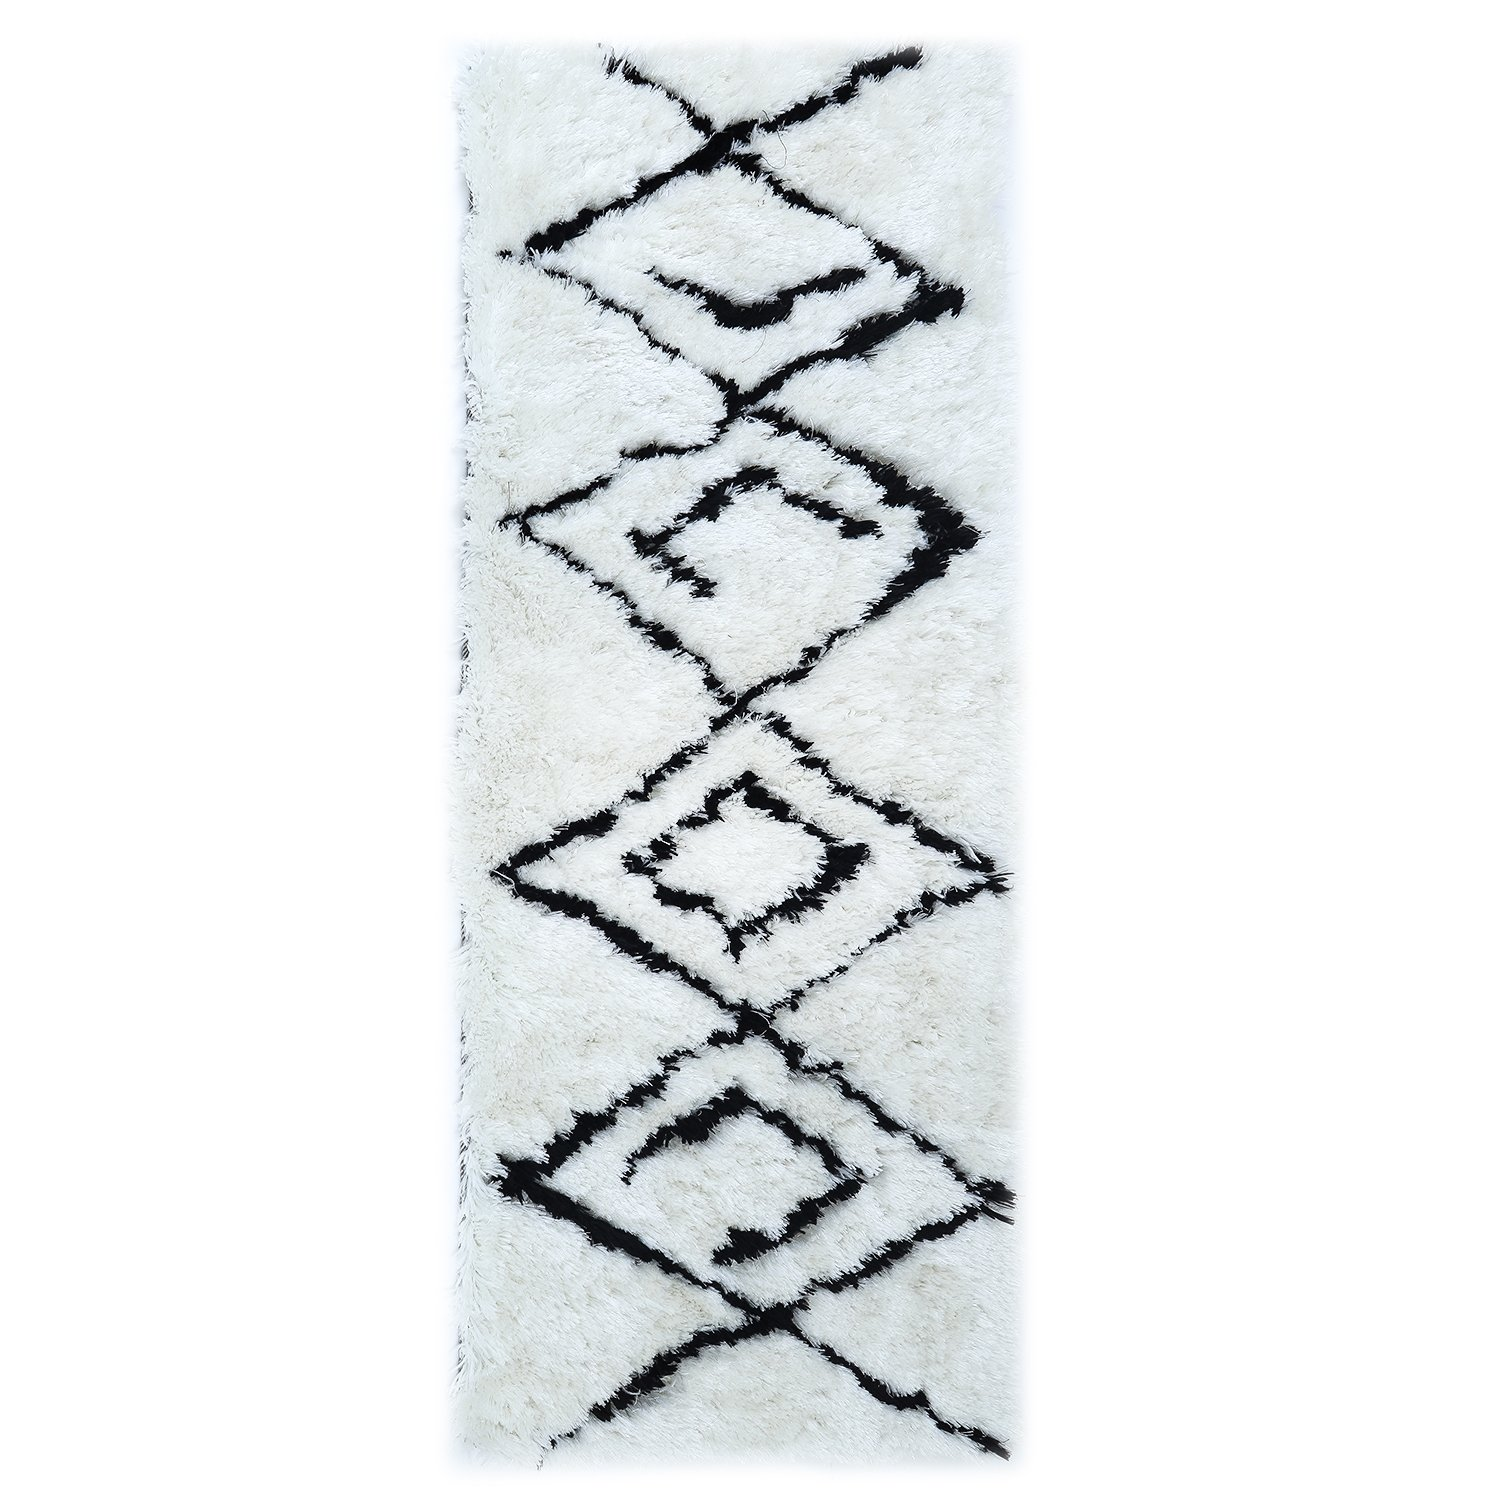 LOCHAS Moroccan Collection Shag Area Rug for Living Room Hallway Contemporary Runner, 2.3' x 6', White and Black